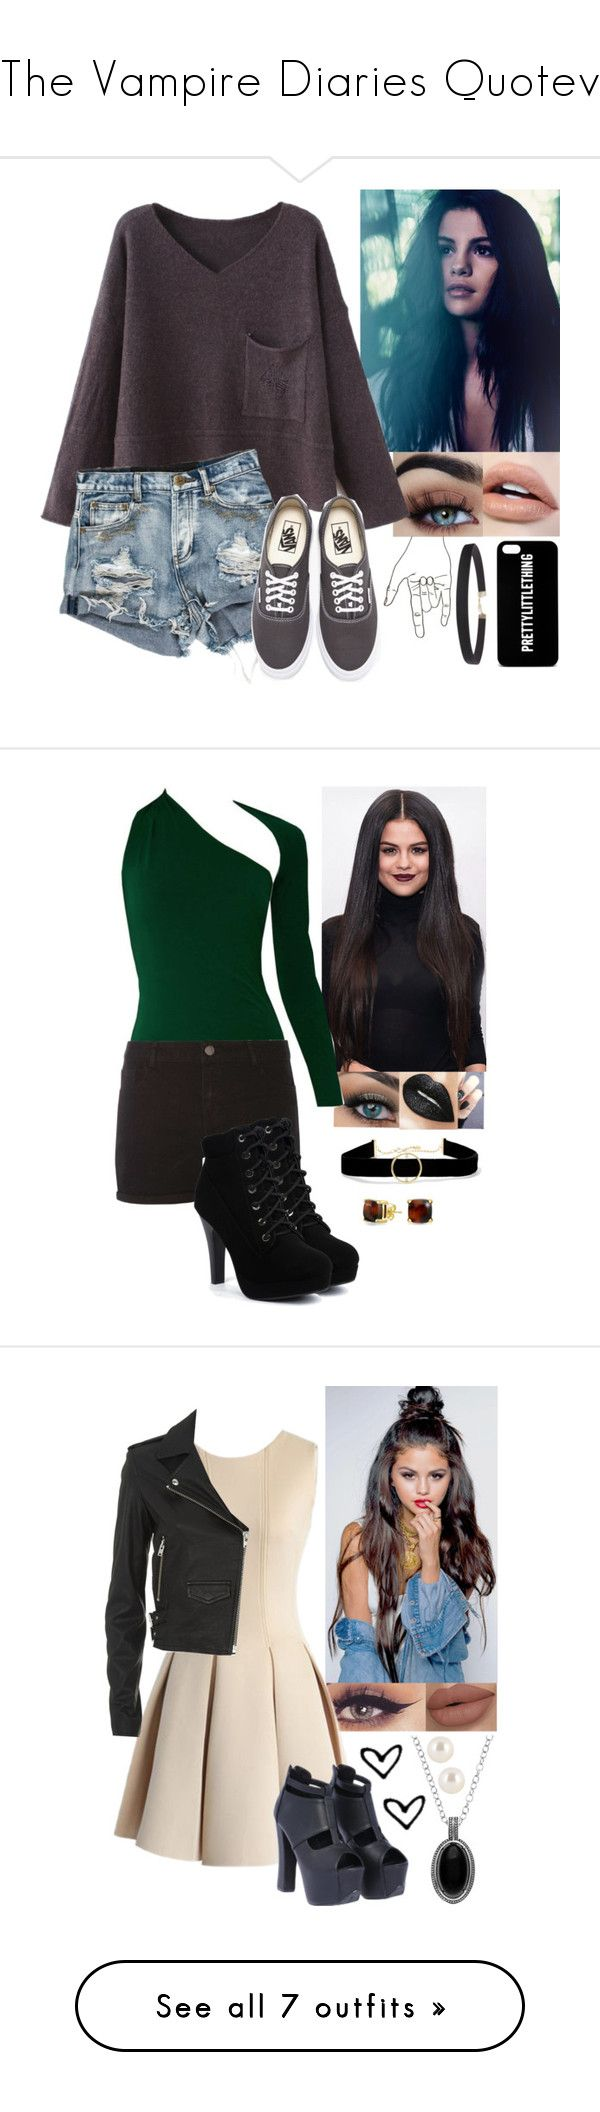 """""""The Vampire Diaries Quotev"""" by anotherlonelyteenager ❤ liked on Polyvore featuring Vans, Humble Chic, Dorothy Perkins, Bling Jewelry, Anissa Kermiche, Chicwish, Henri Bendel, IRO, Kate Bissett and Calvin Klein Underwear"""